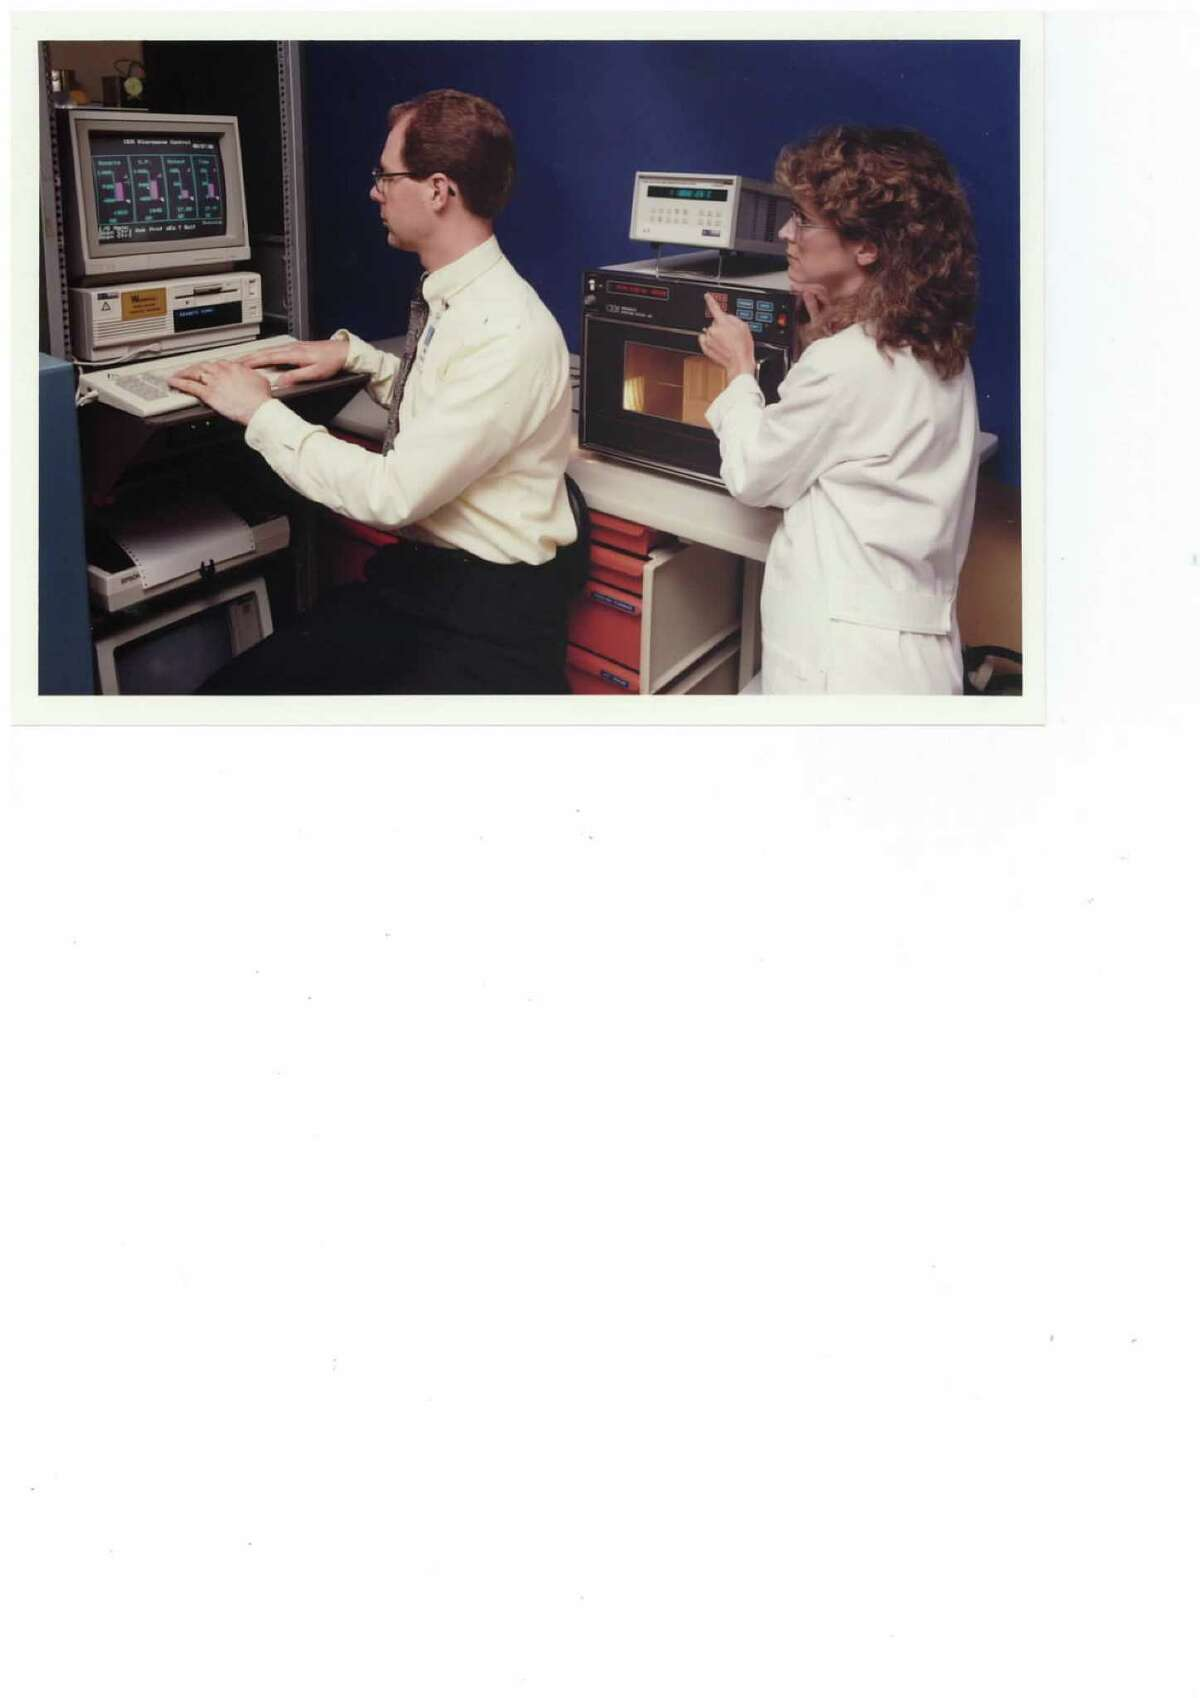 Holly Comanzo and her colleague Bill Schultz experiment with microwave sintering of ZnO Varistor Ceramics in the 1980s. (Photo provided)